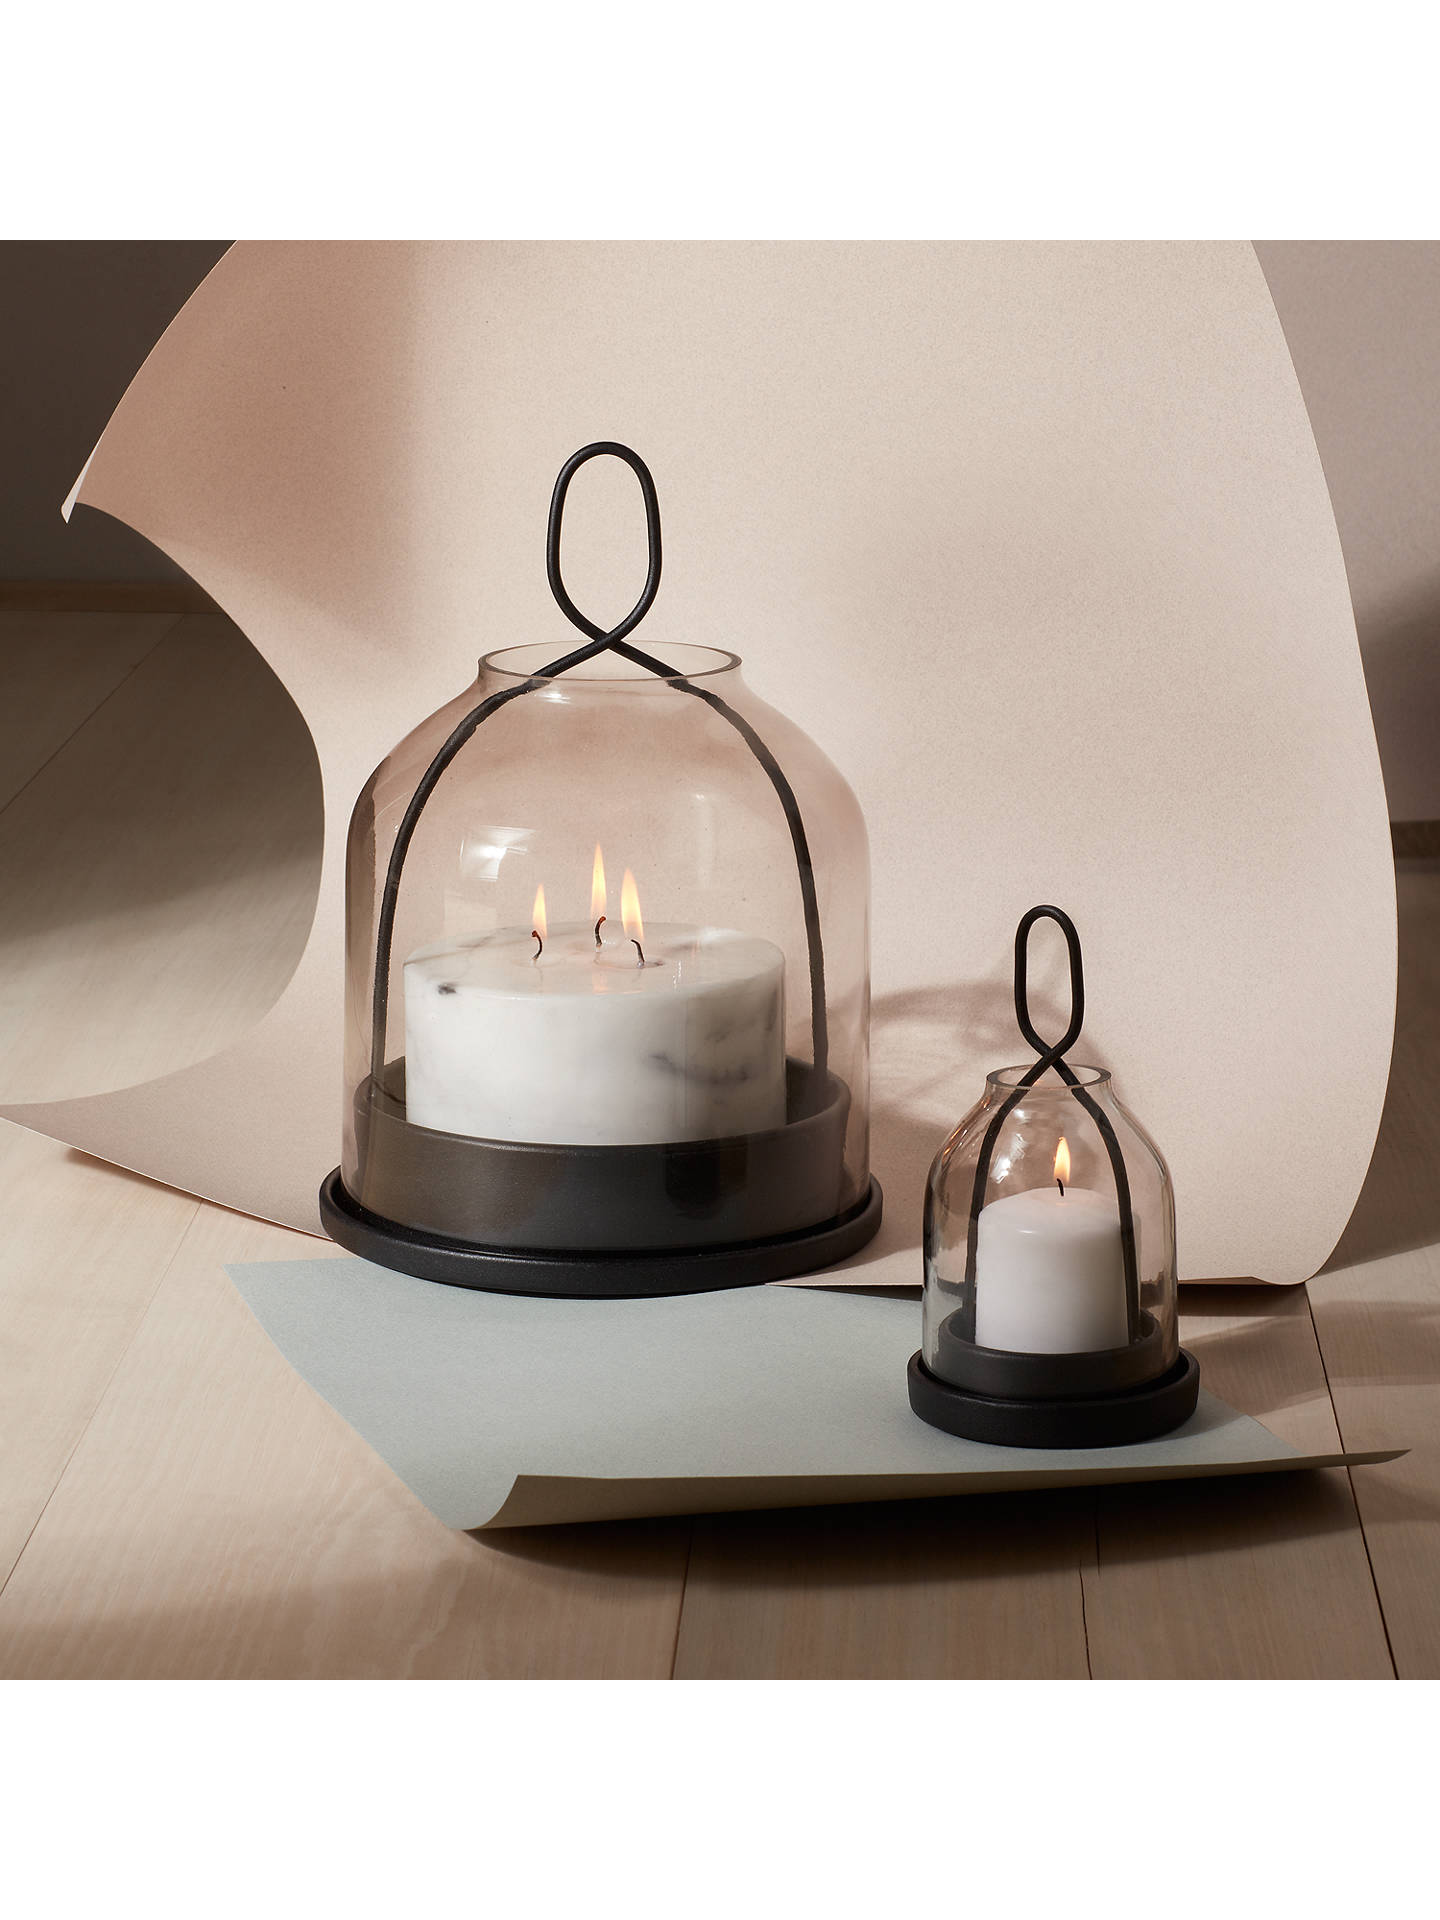 BuyDesign Project by John Lewis No.150 Smoke Glass Lantern, Large Online at johnlewis.com